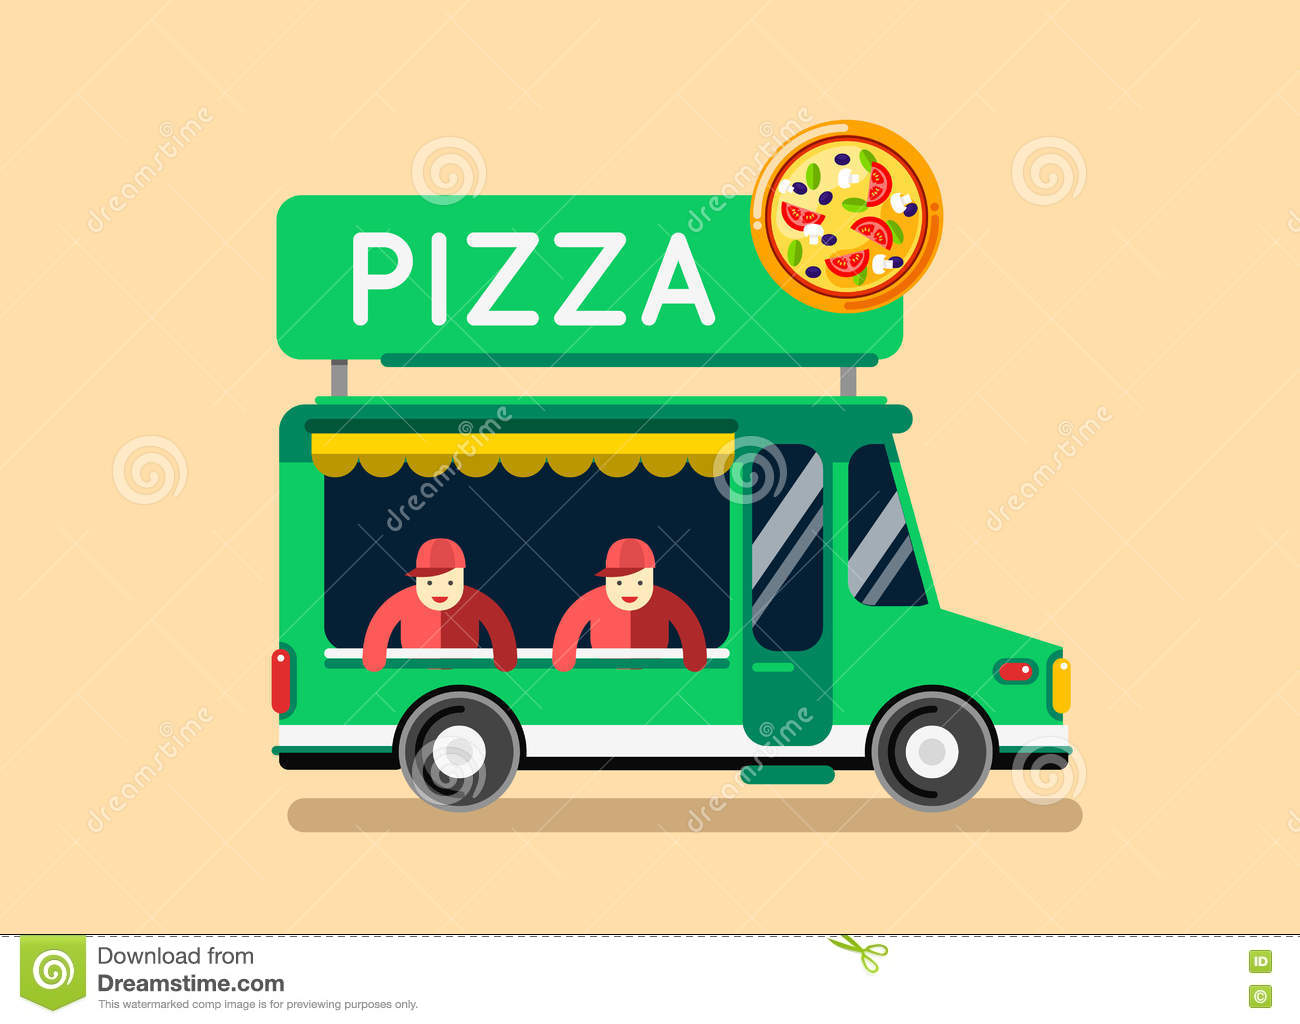 Pizza Food Truck City Car Food Truck Auto Cafe Mobile